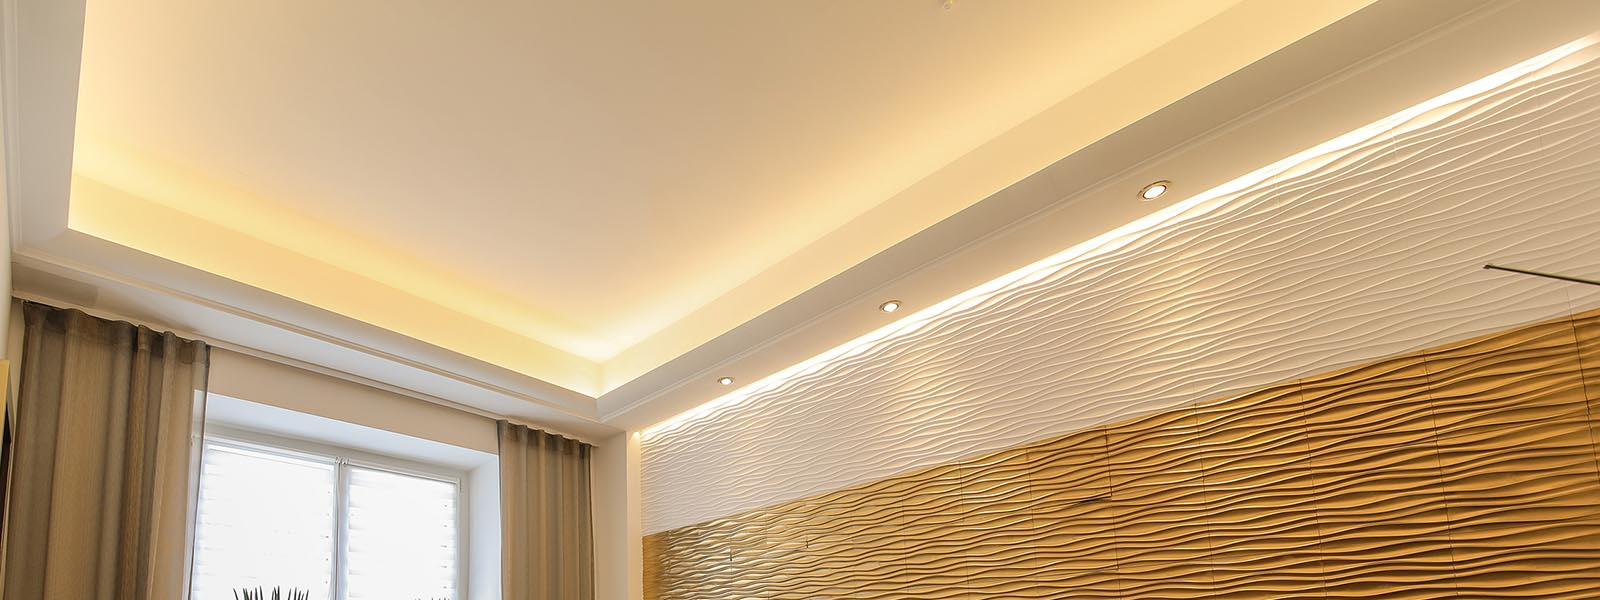 STUCCO AND LIGHTING PROFILES